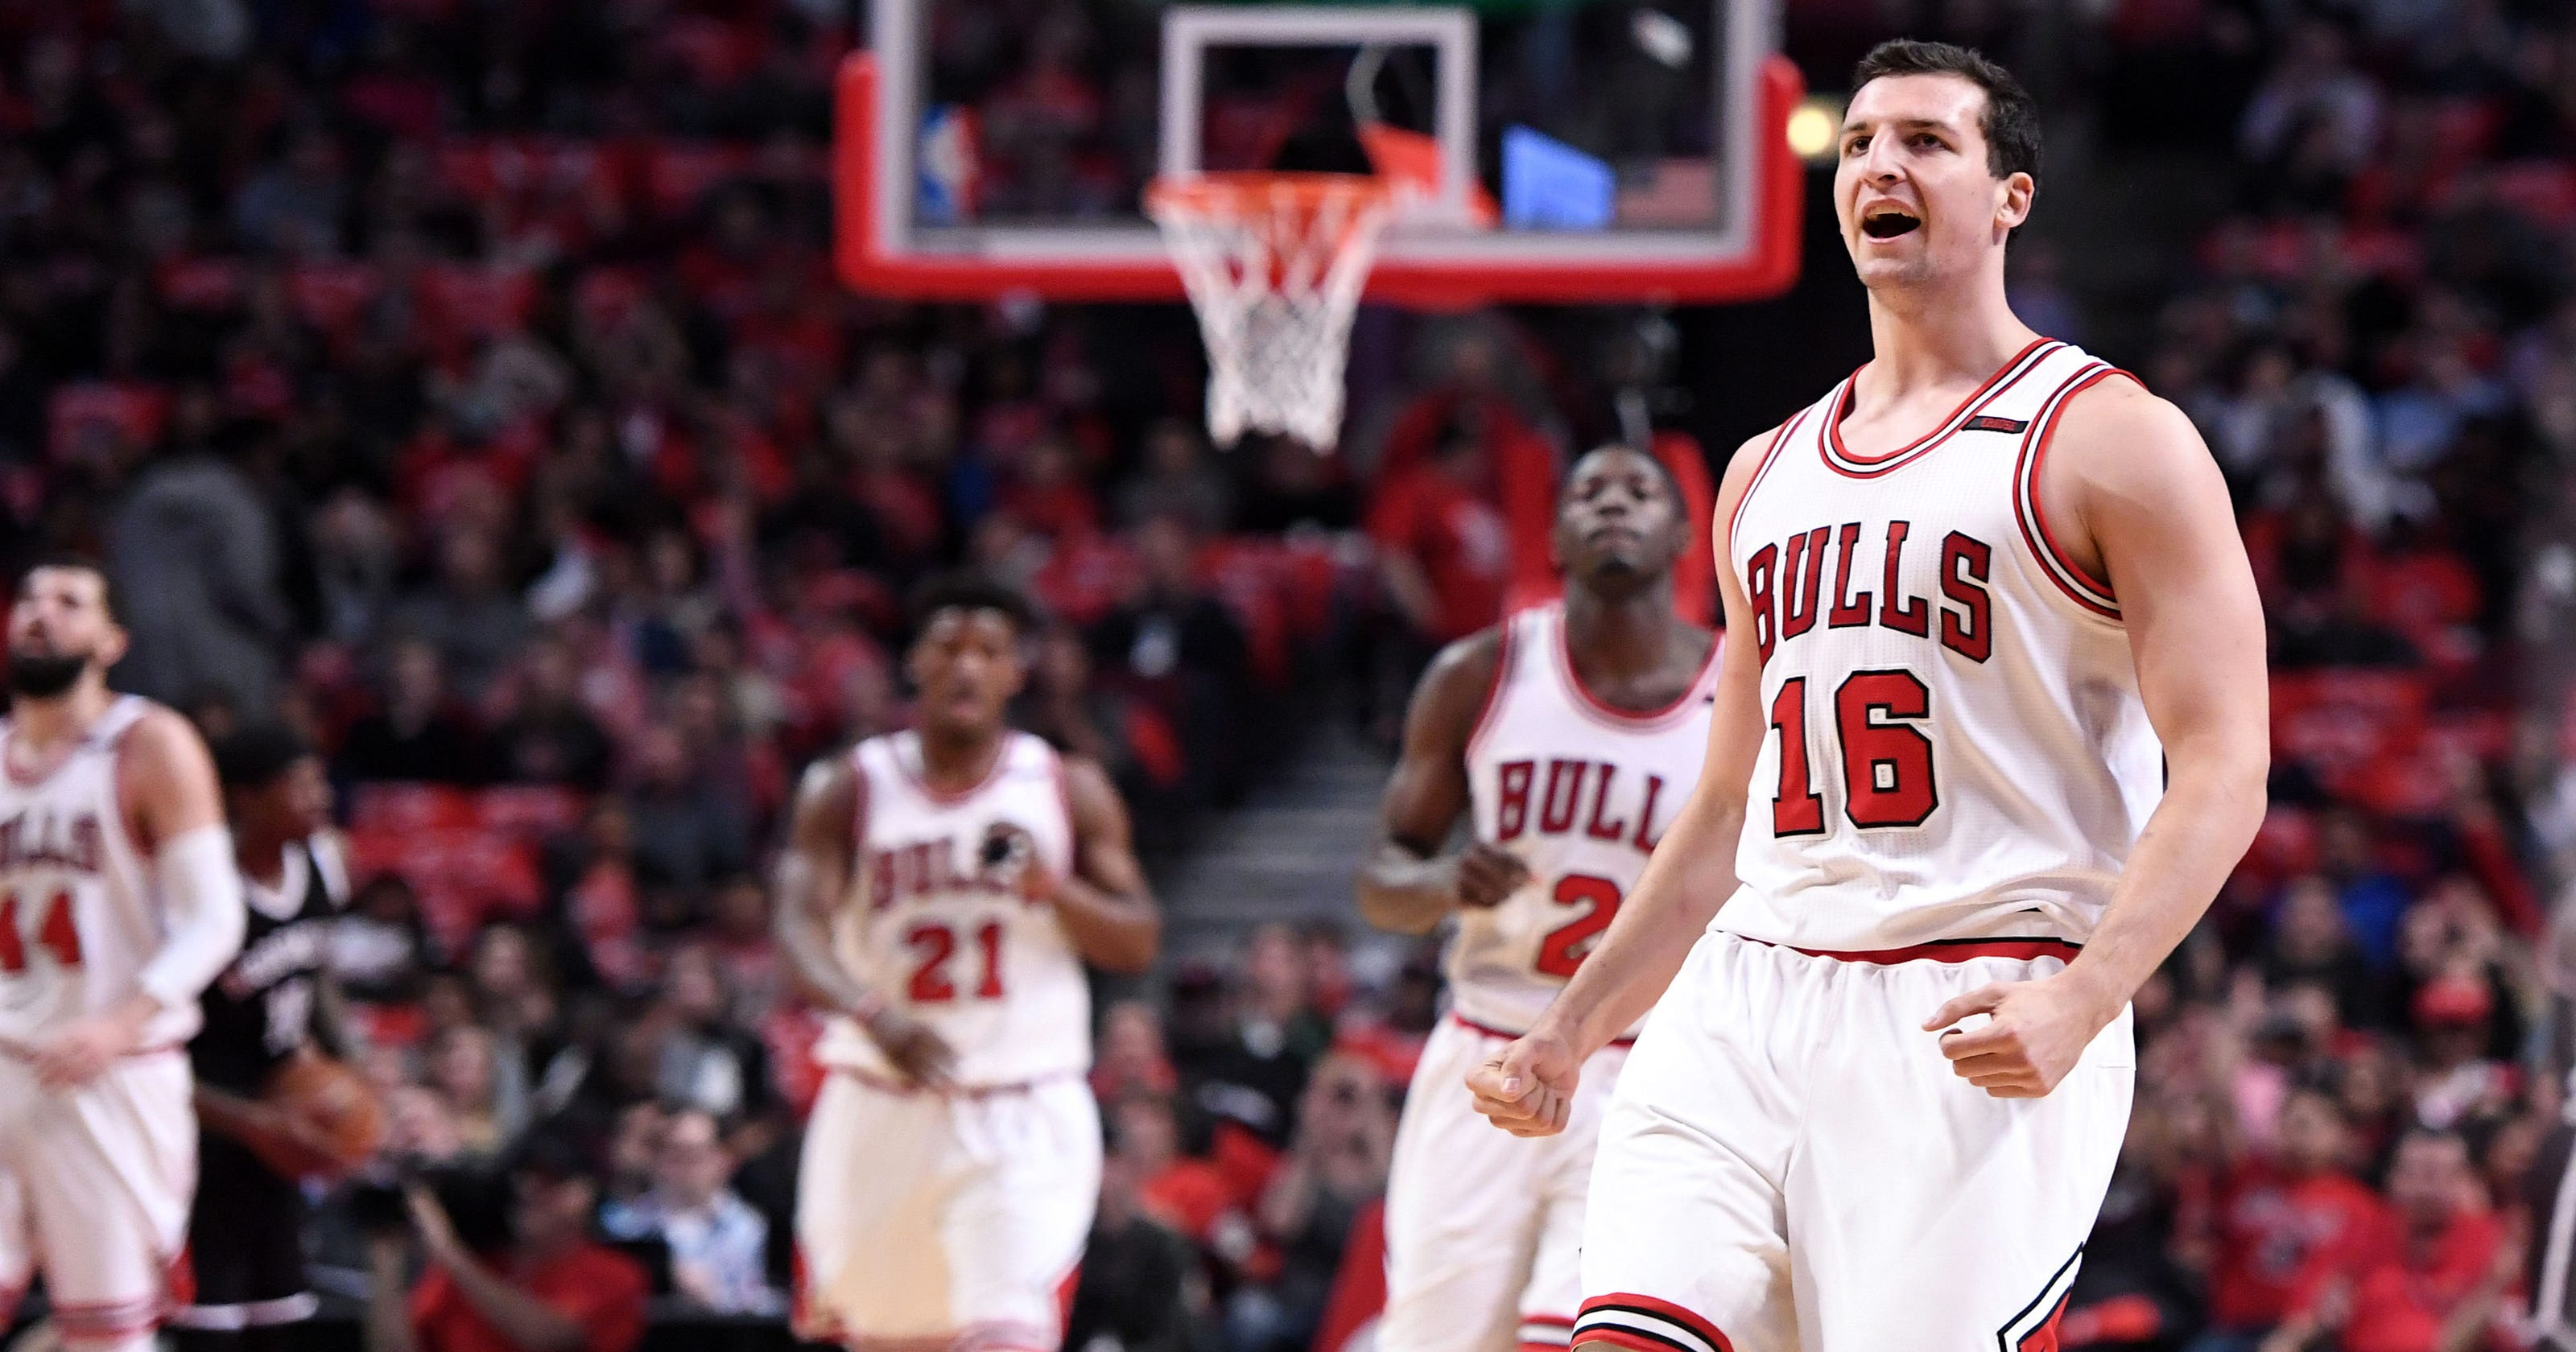 bd253396809 Bulls clinch playoff spot in rout over listless Nets